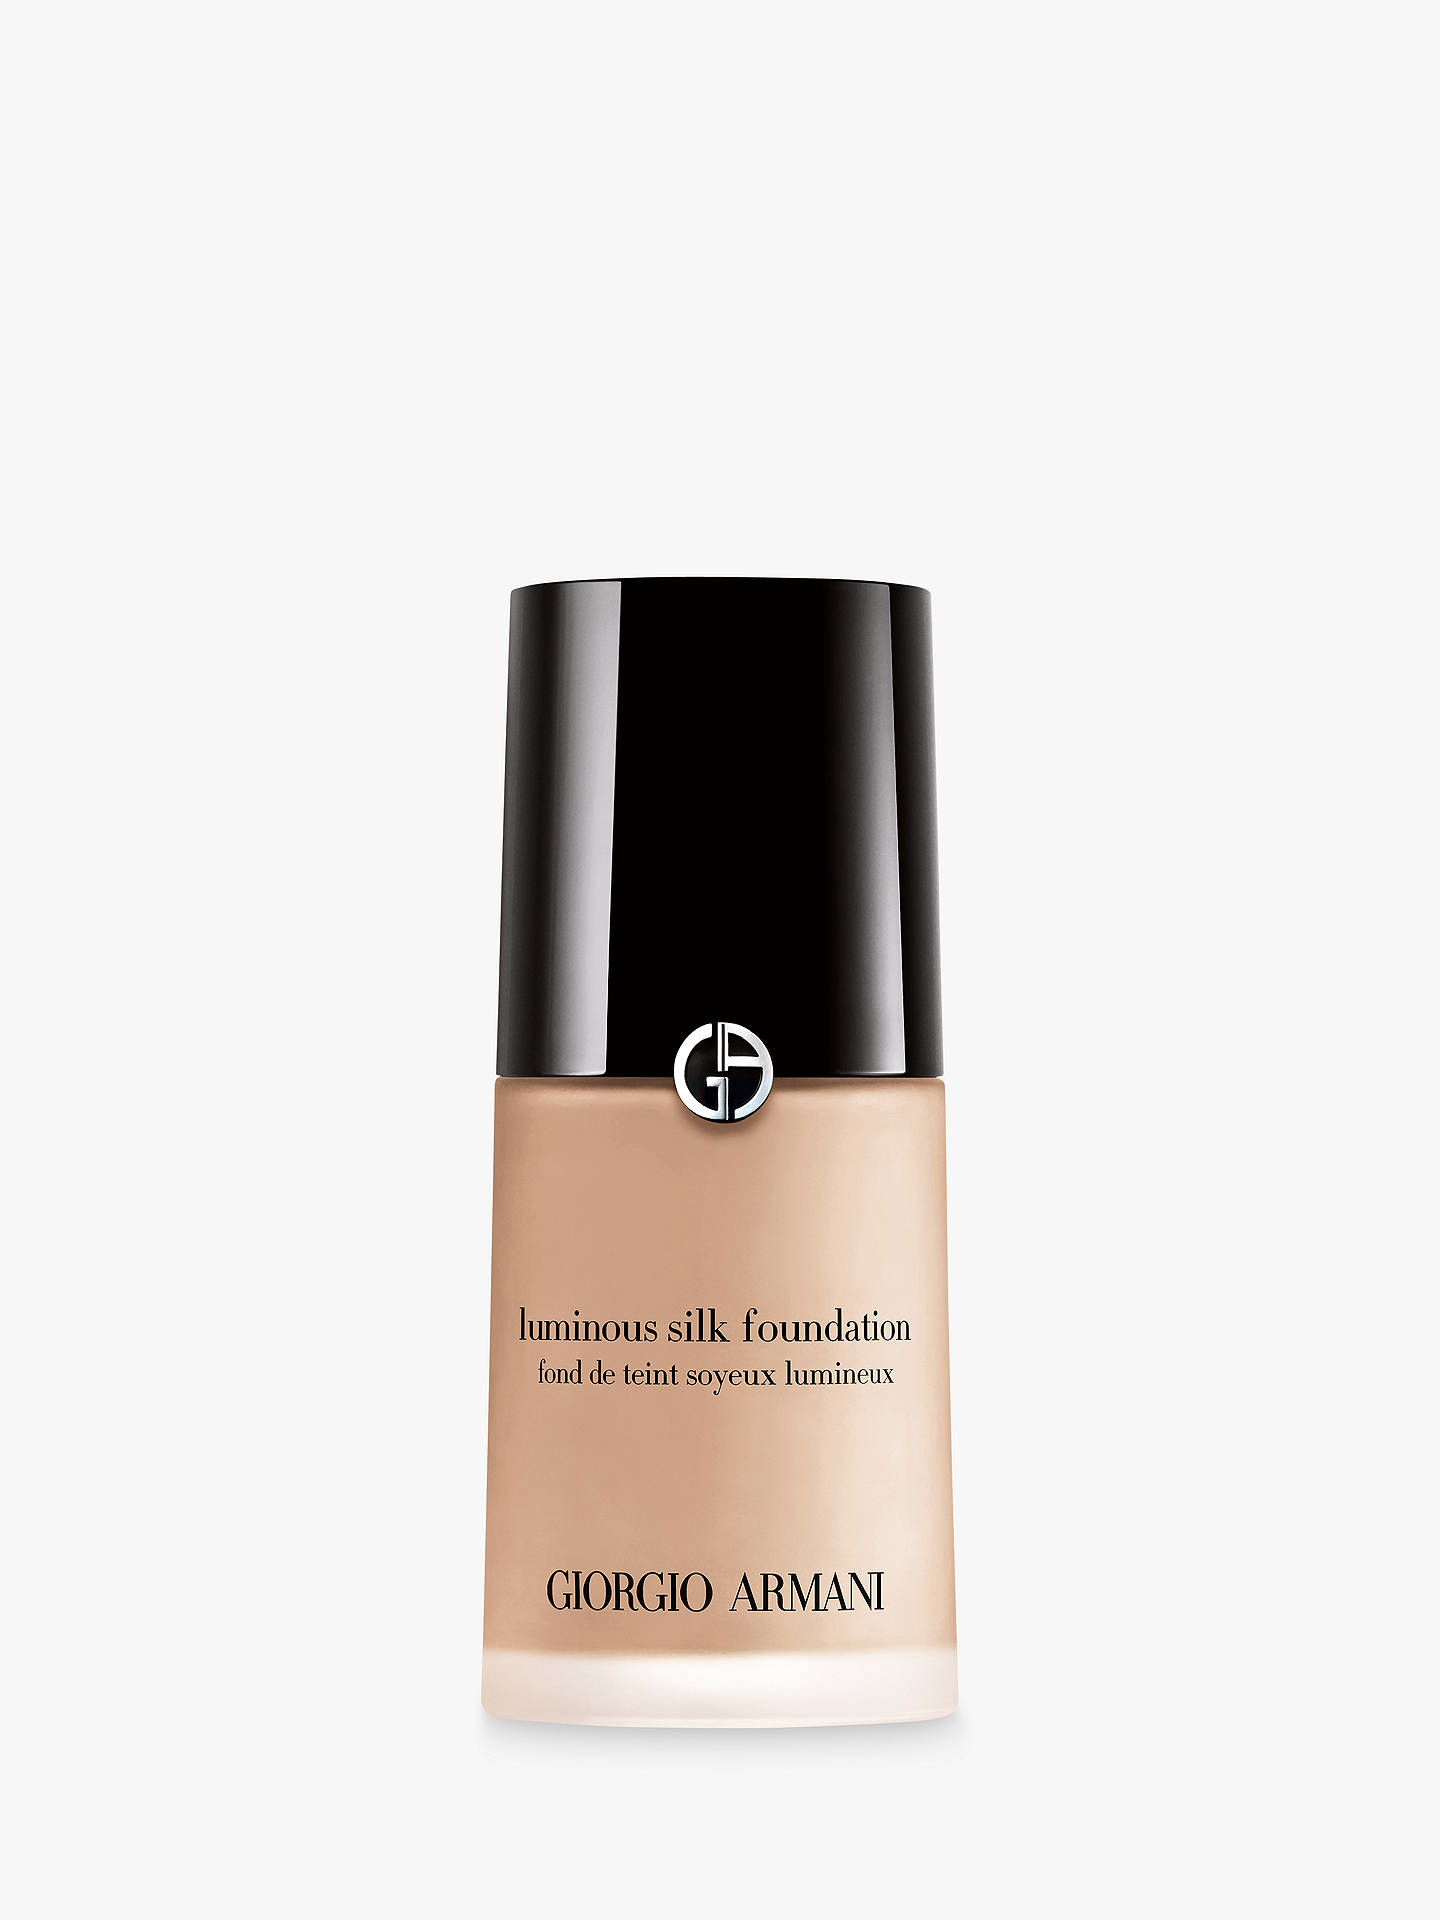 ed7a65ab3bf5 Giorgio Armani Luminous Silk Foundation at John Lewis   Partners